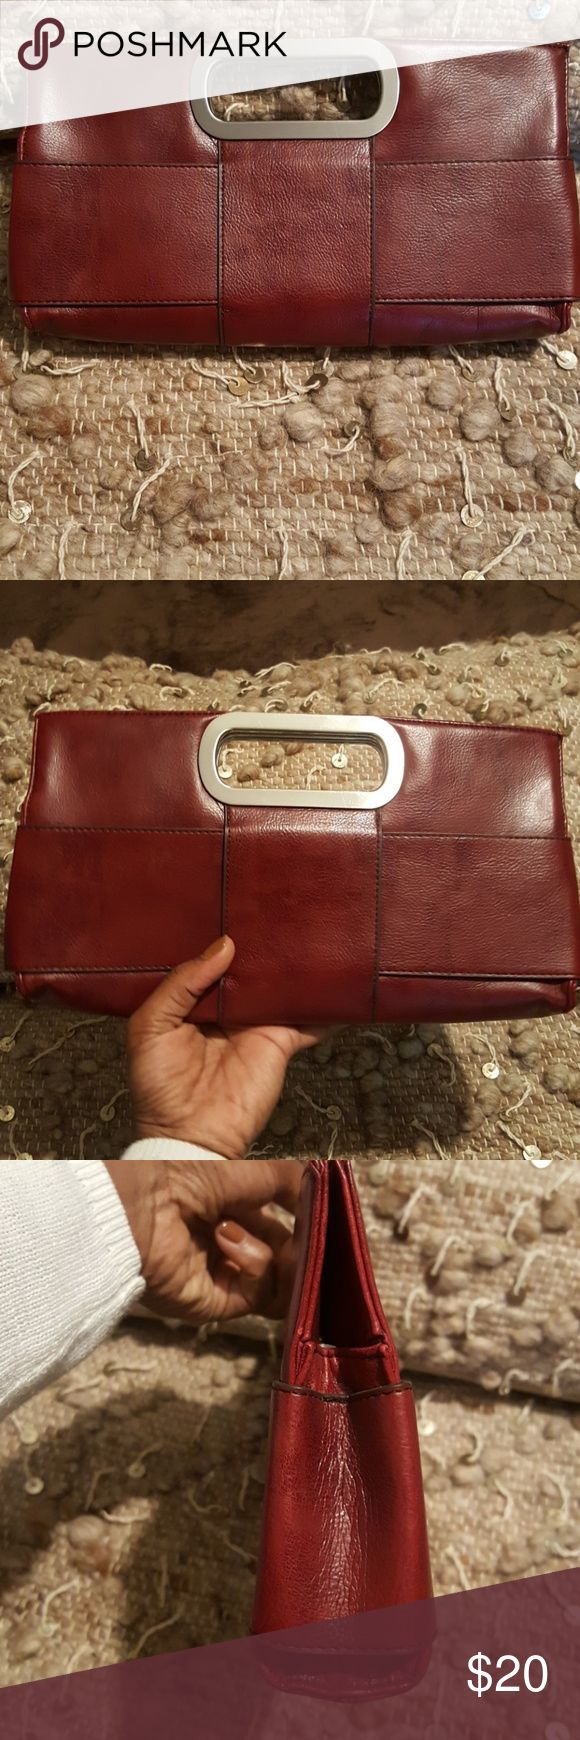 The Limited Ruby Red Clutch EUC The color shown is true color. Very posh! Definitely adds a pop of color to any outfit! Trying to clear my closet. This clutch will not disappoint! Have questions, just ask! 😉 The Limited Bags